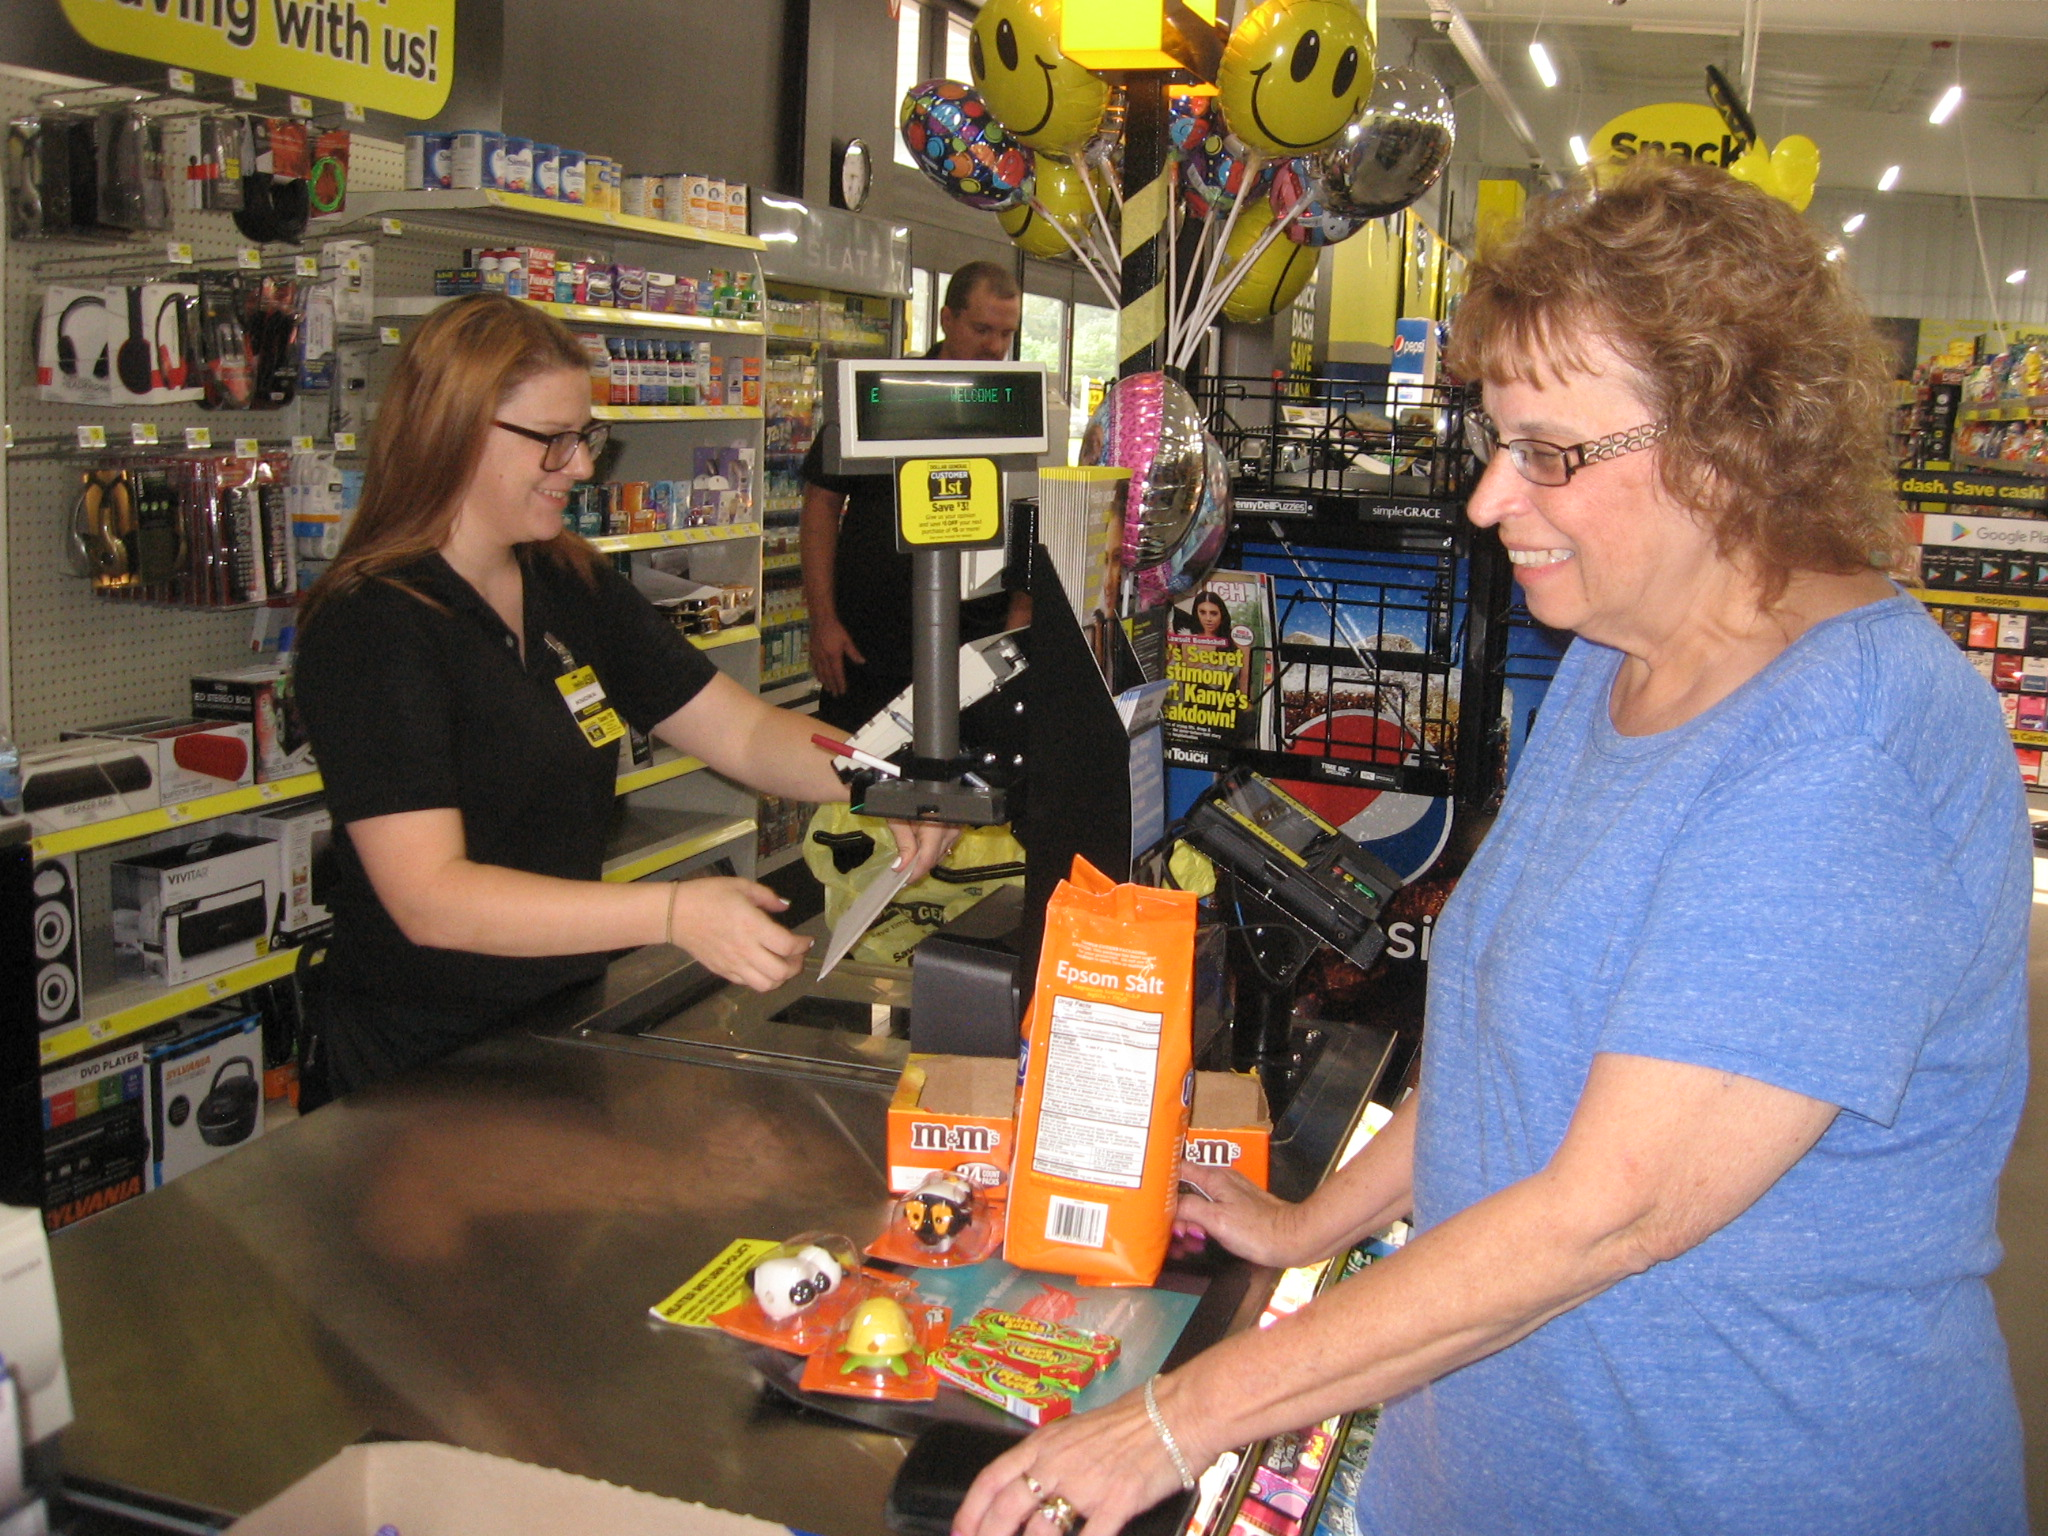 Dollar General Opens To Large Crowd